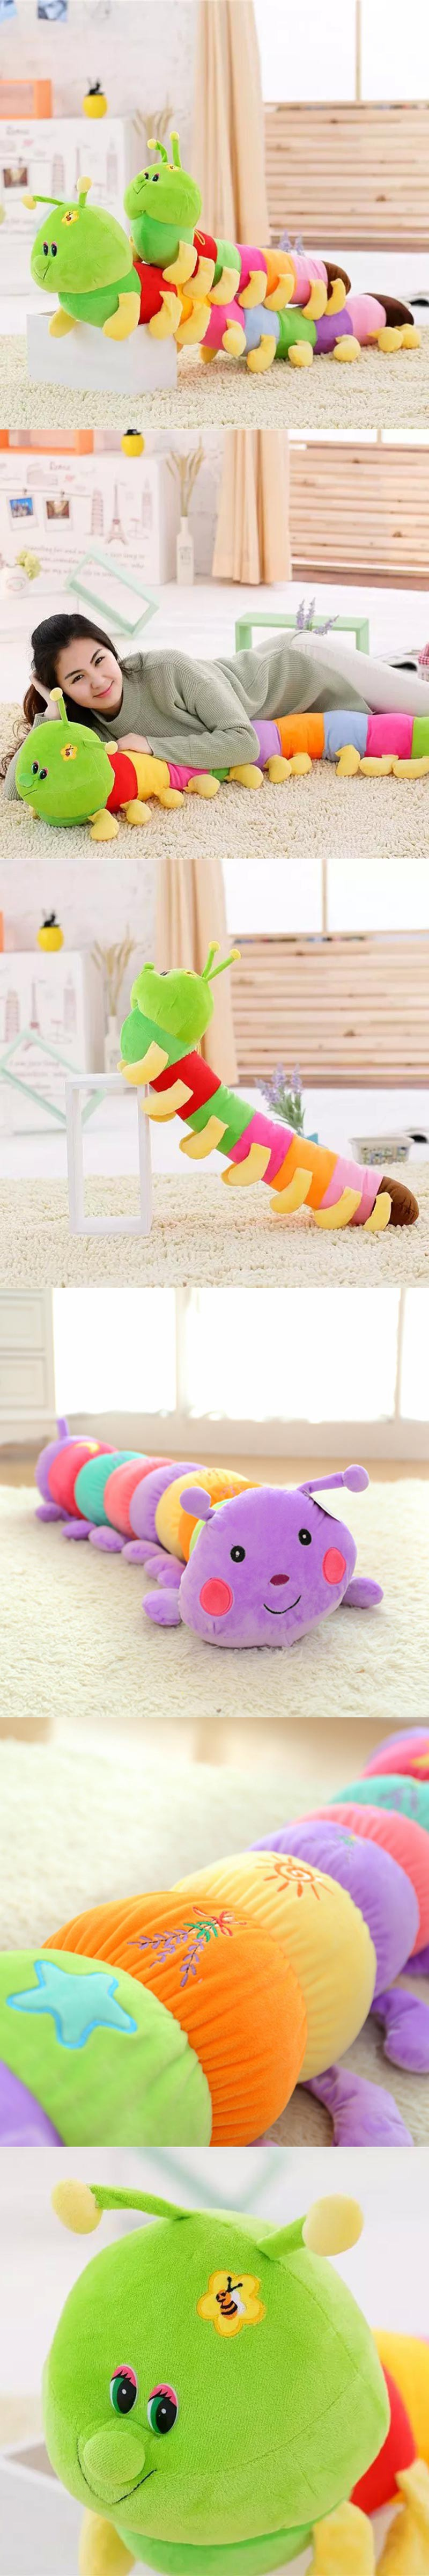 Giant Colorful 80cm Caterpillar Plush Toy Stuffed Worm Doll Kids